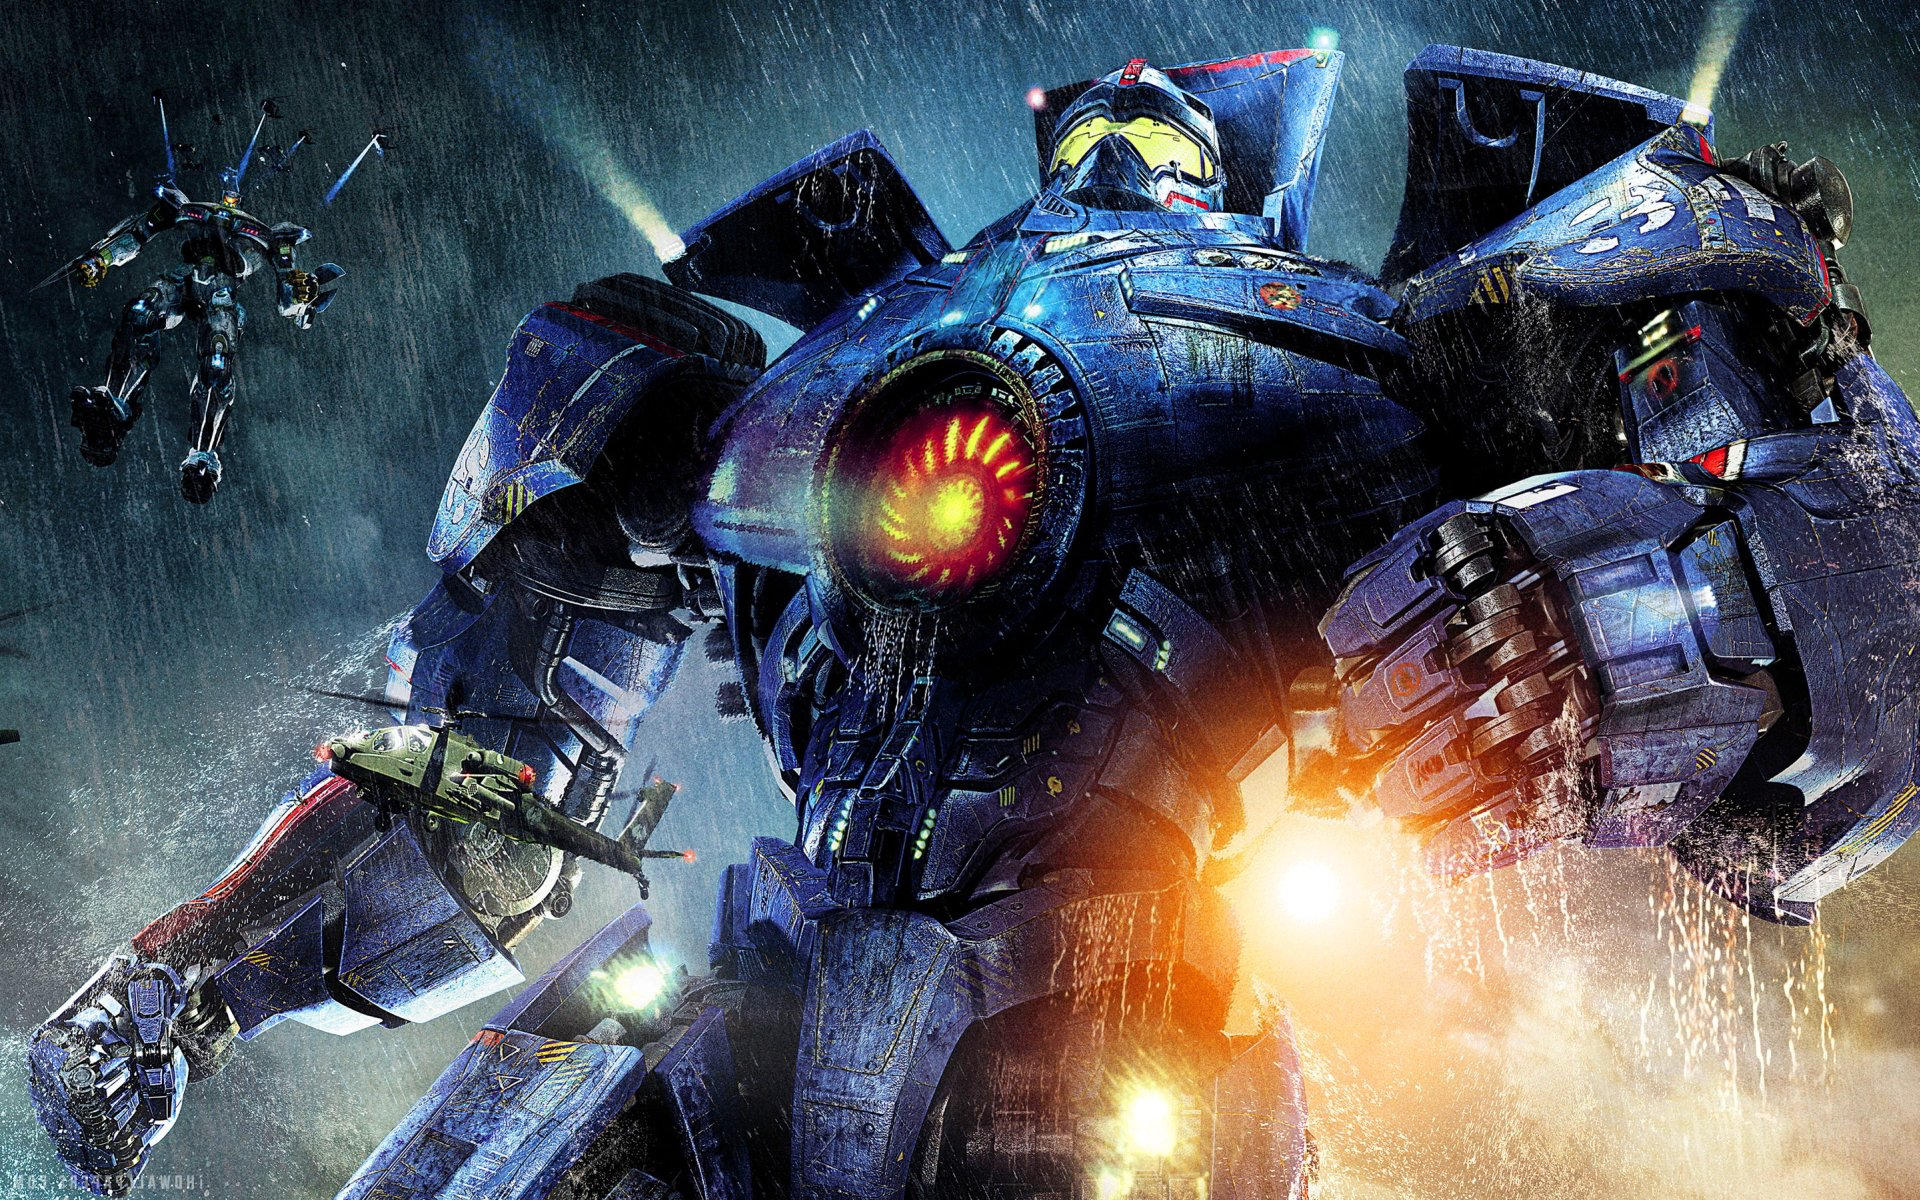 Cool War Robot Wallpaper Download HD 15567   Amazing Wallpaperz 1920x1200